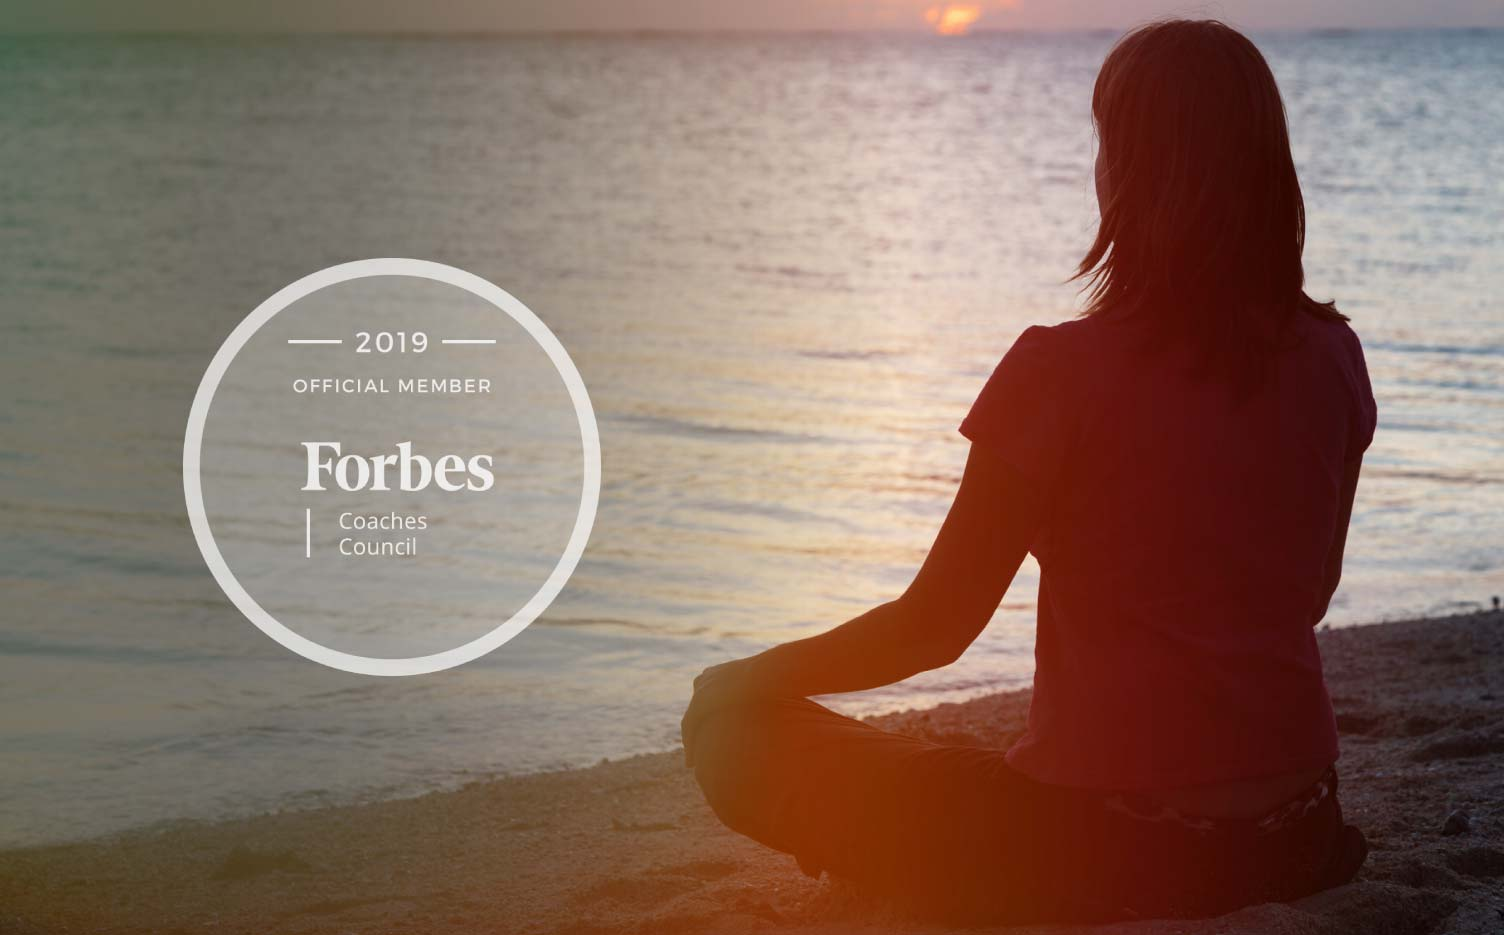 Jon Dwoskin's Forbes Coaches Council Article: Three Ways To Slow Down And Calm Your Ego - woman mediating at water's edge